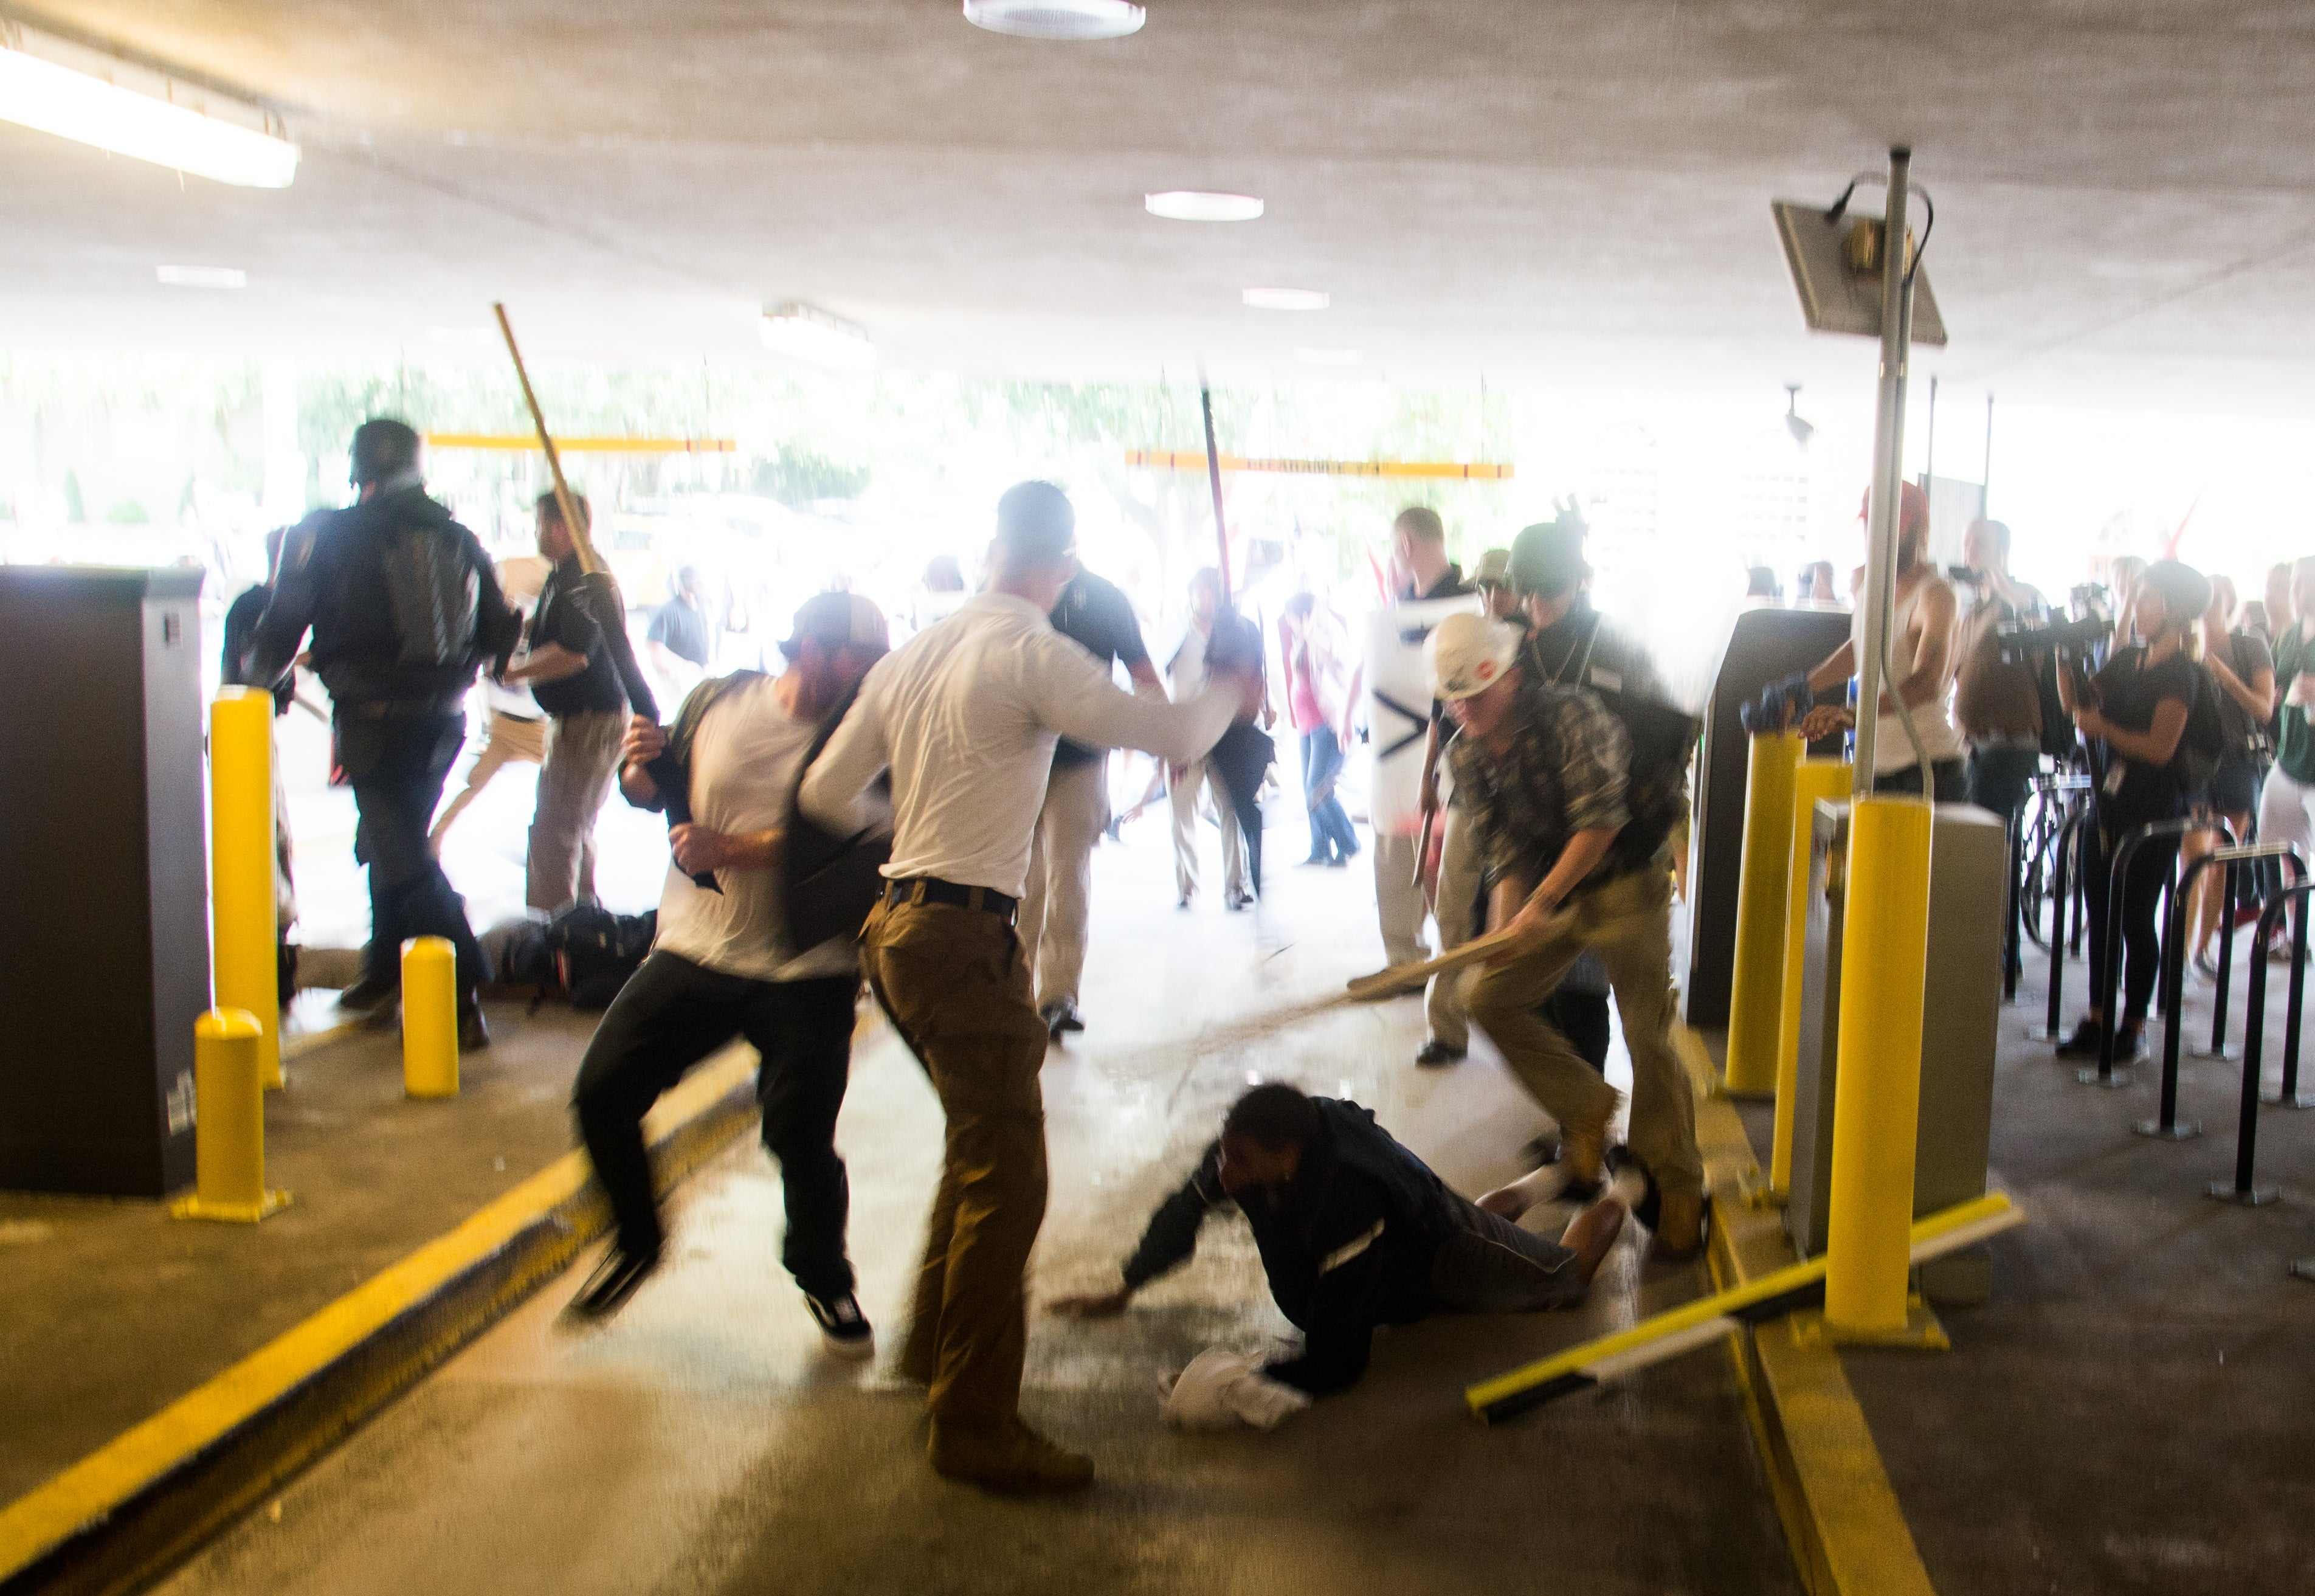 The 20-Year-Old Black Man Beaten ByWhite Supremacists In Charlottesville May Sue City